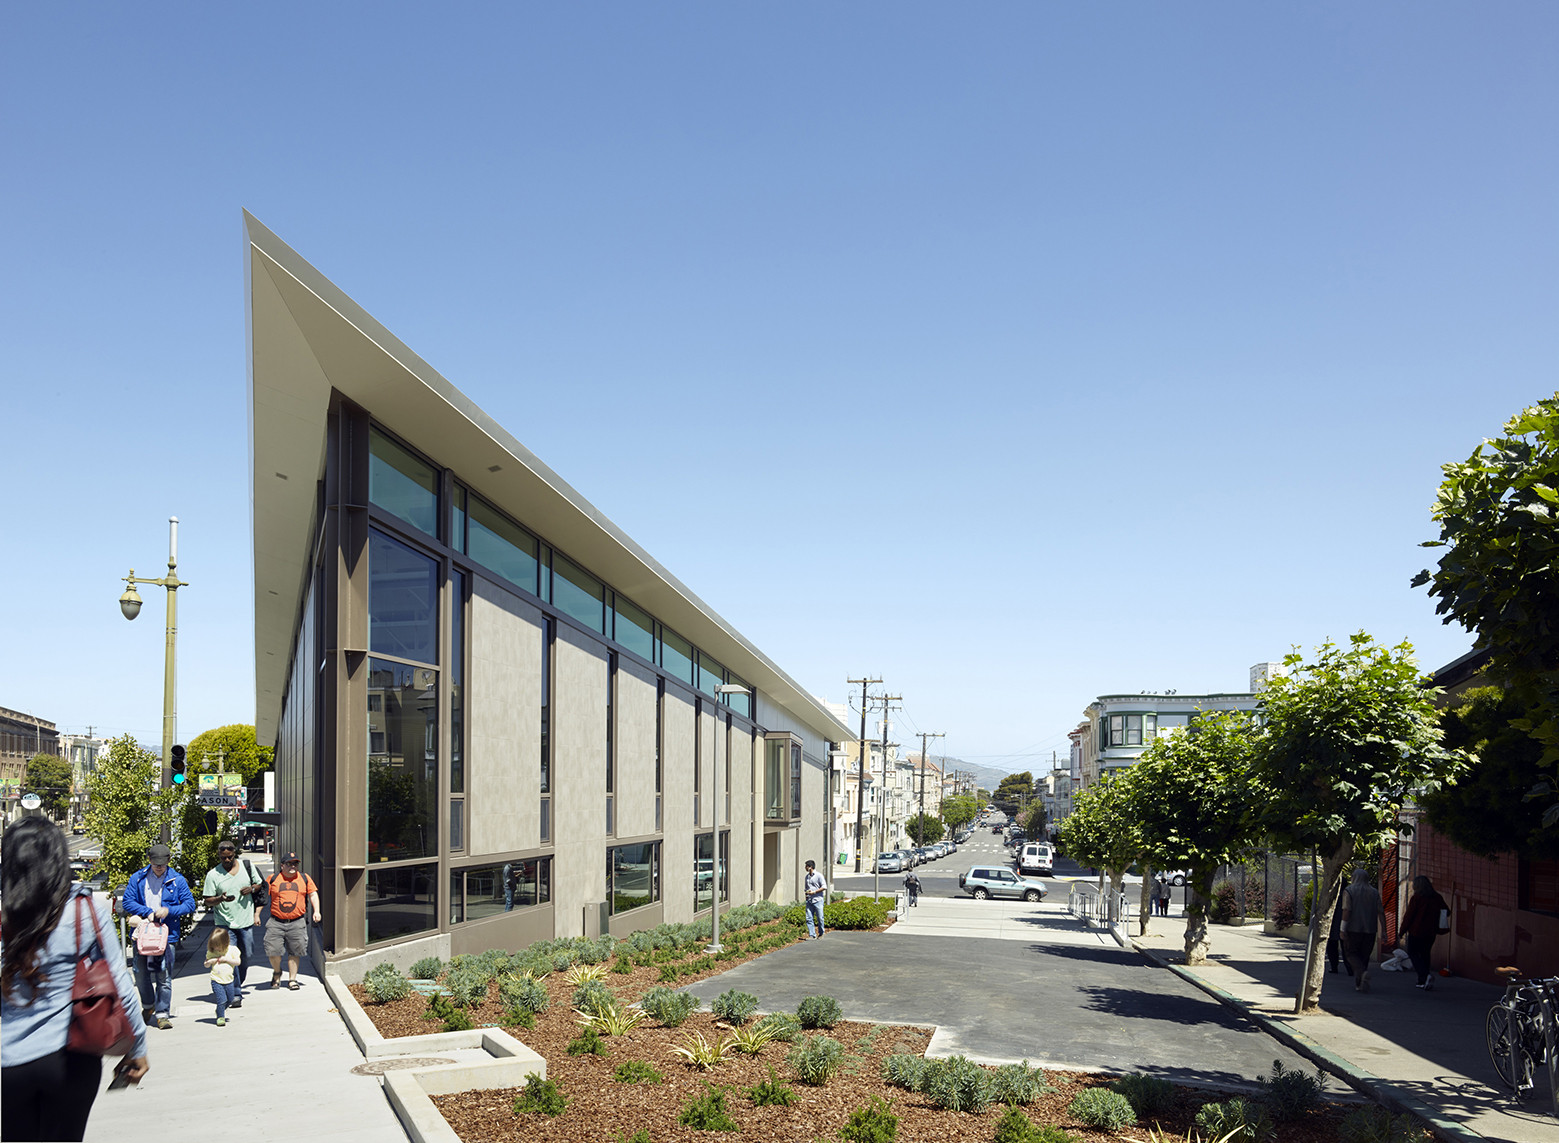 North Beach Branch Library / LMS Architects, Courtesy of LMS Architects